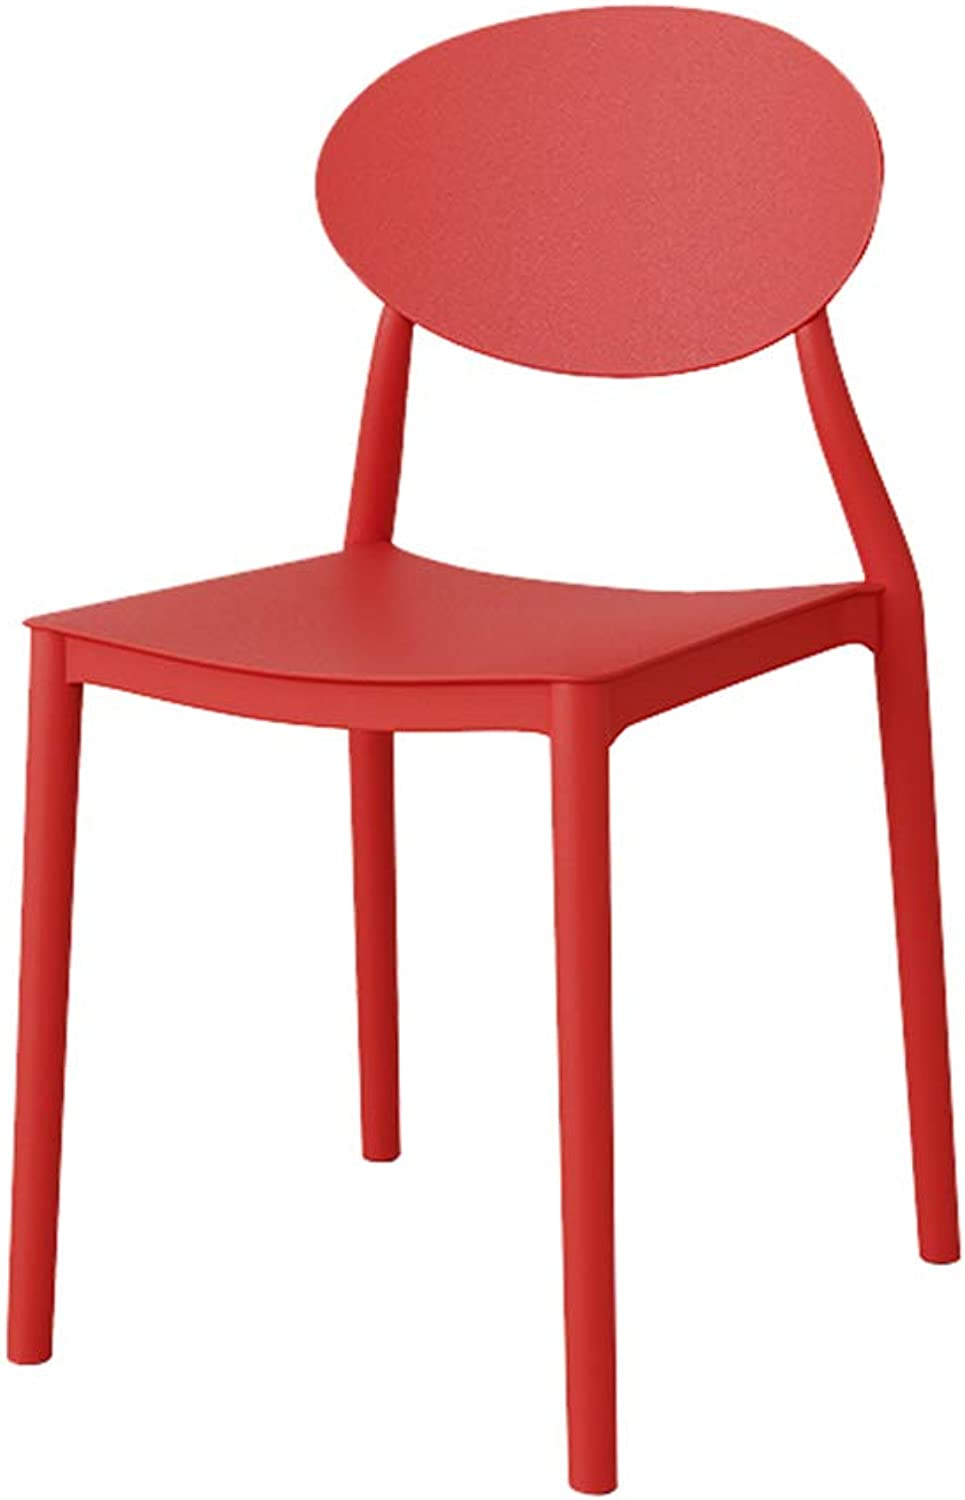 MING REN Modern Minimalist Adult Stool Plastic Back Dressing Table Makeup Chair - Multi-color Optional (Size  44X42X82 cm) (color   RED)